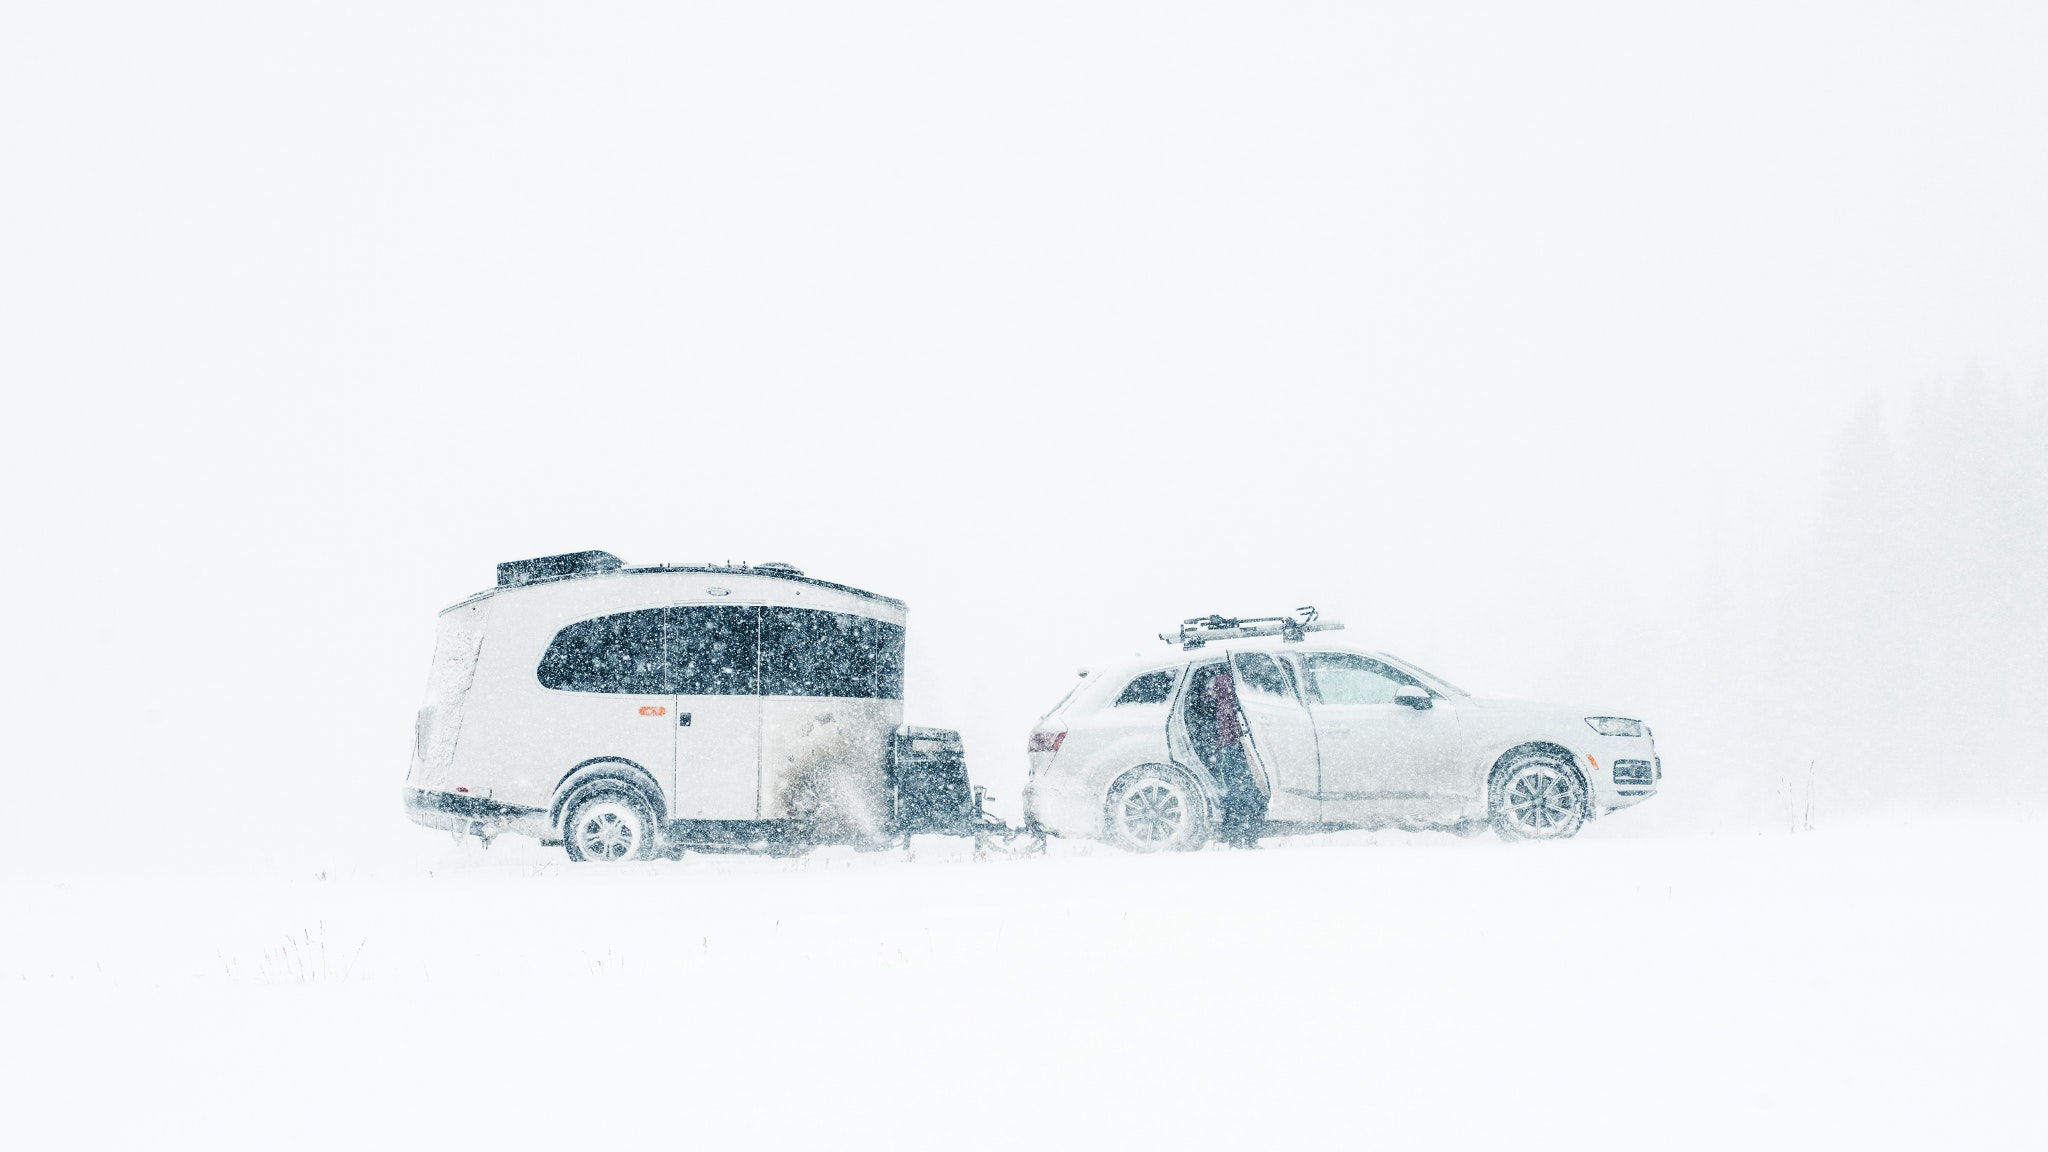 Airstream-Bascamp-and-Audi-Snow-Desktop-Feature